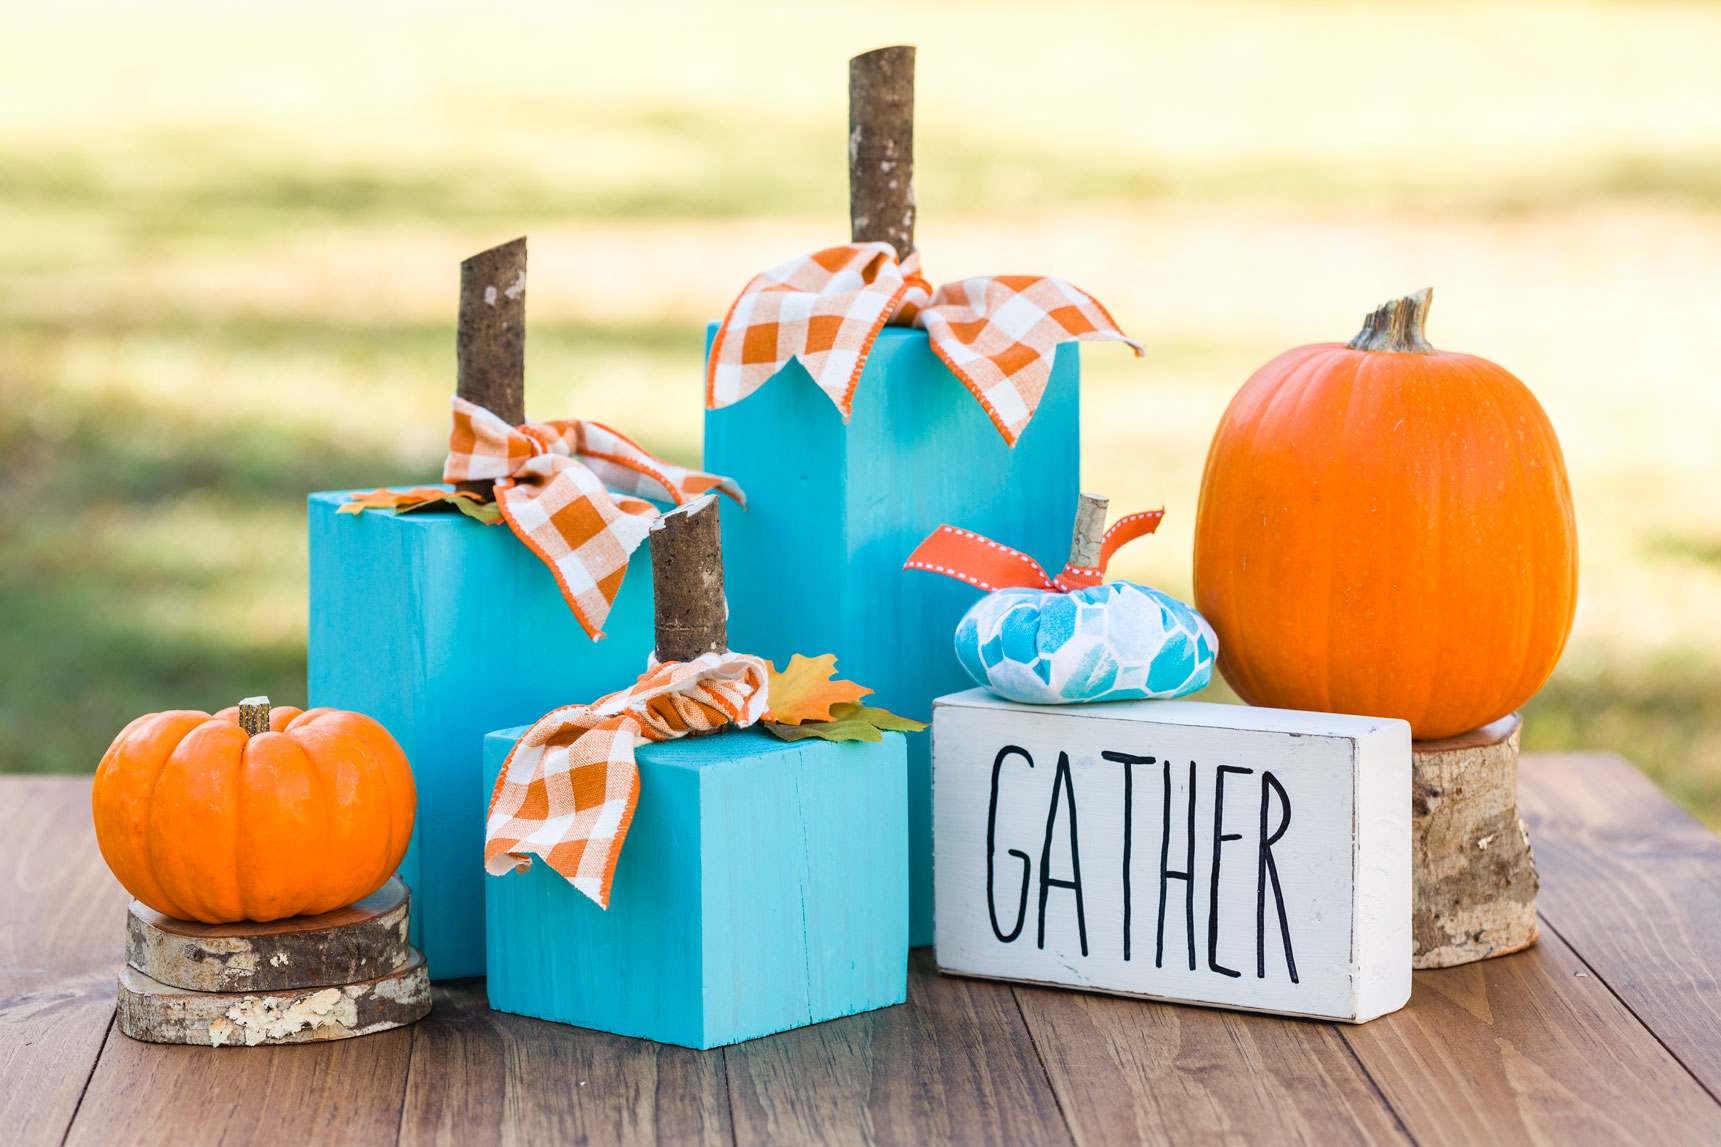 Turquoise Wooden Pumpkins on a wood table